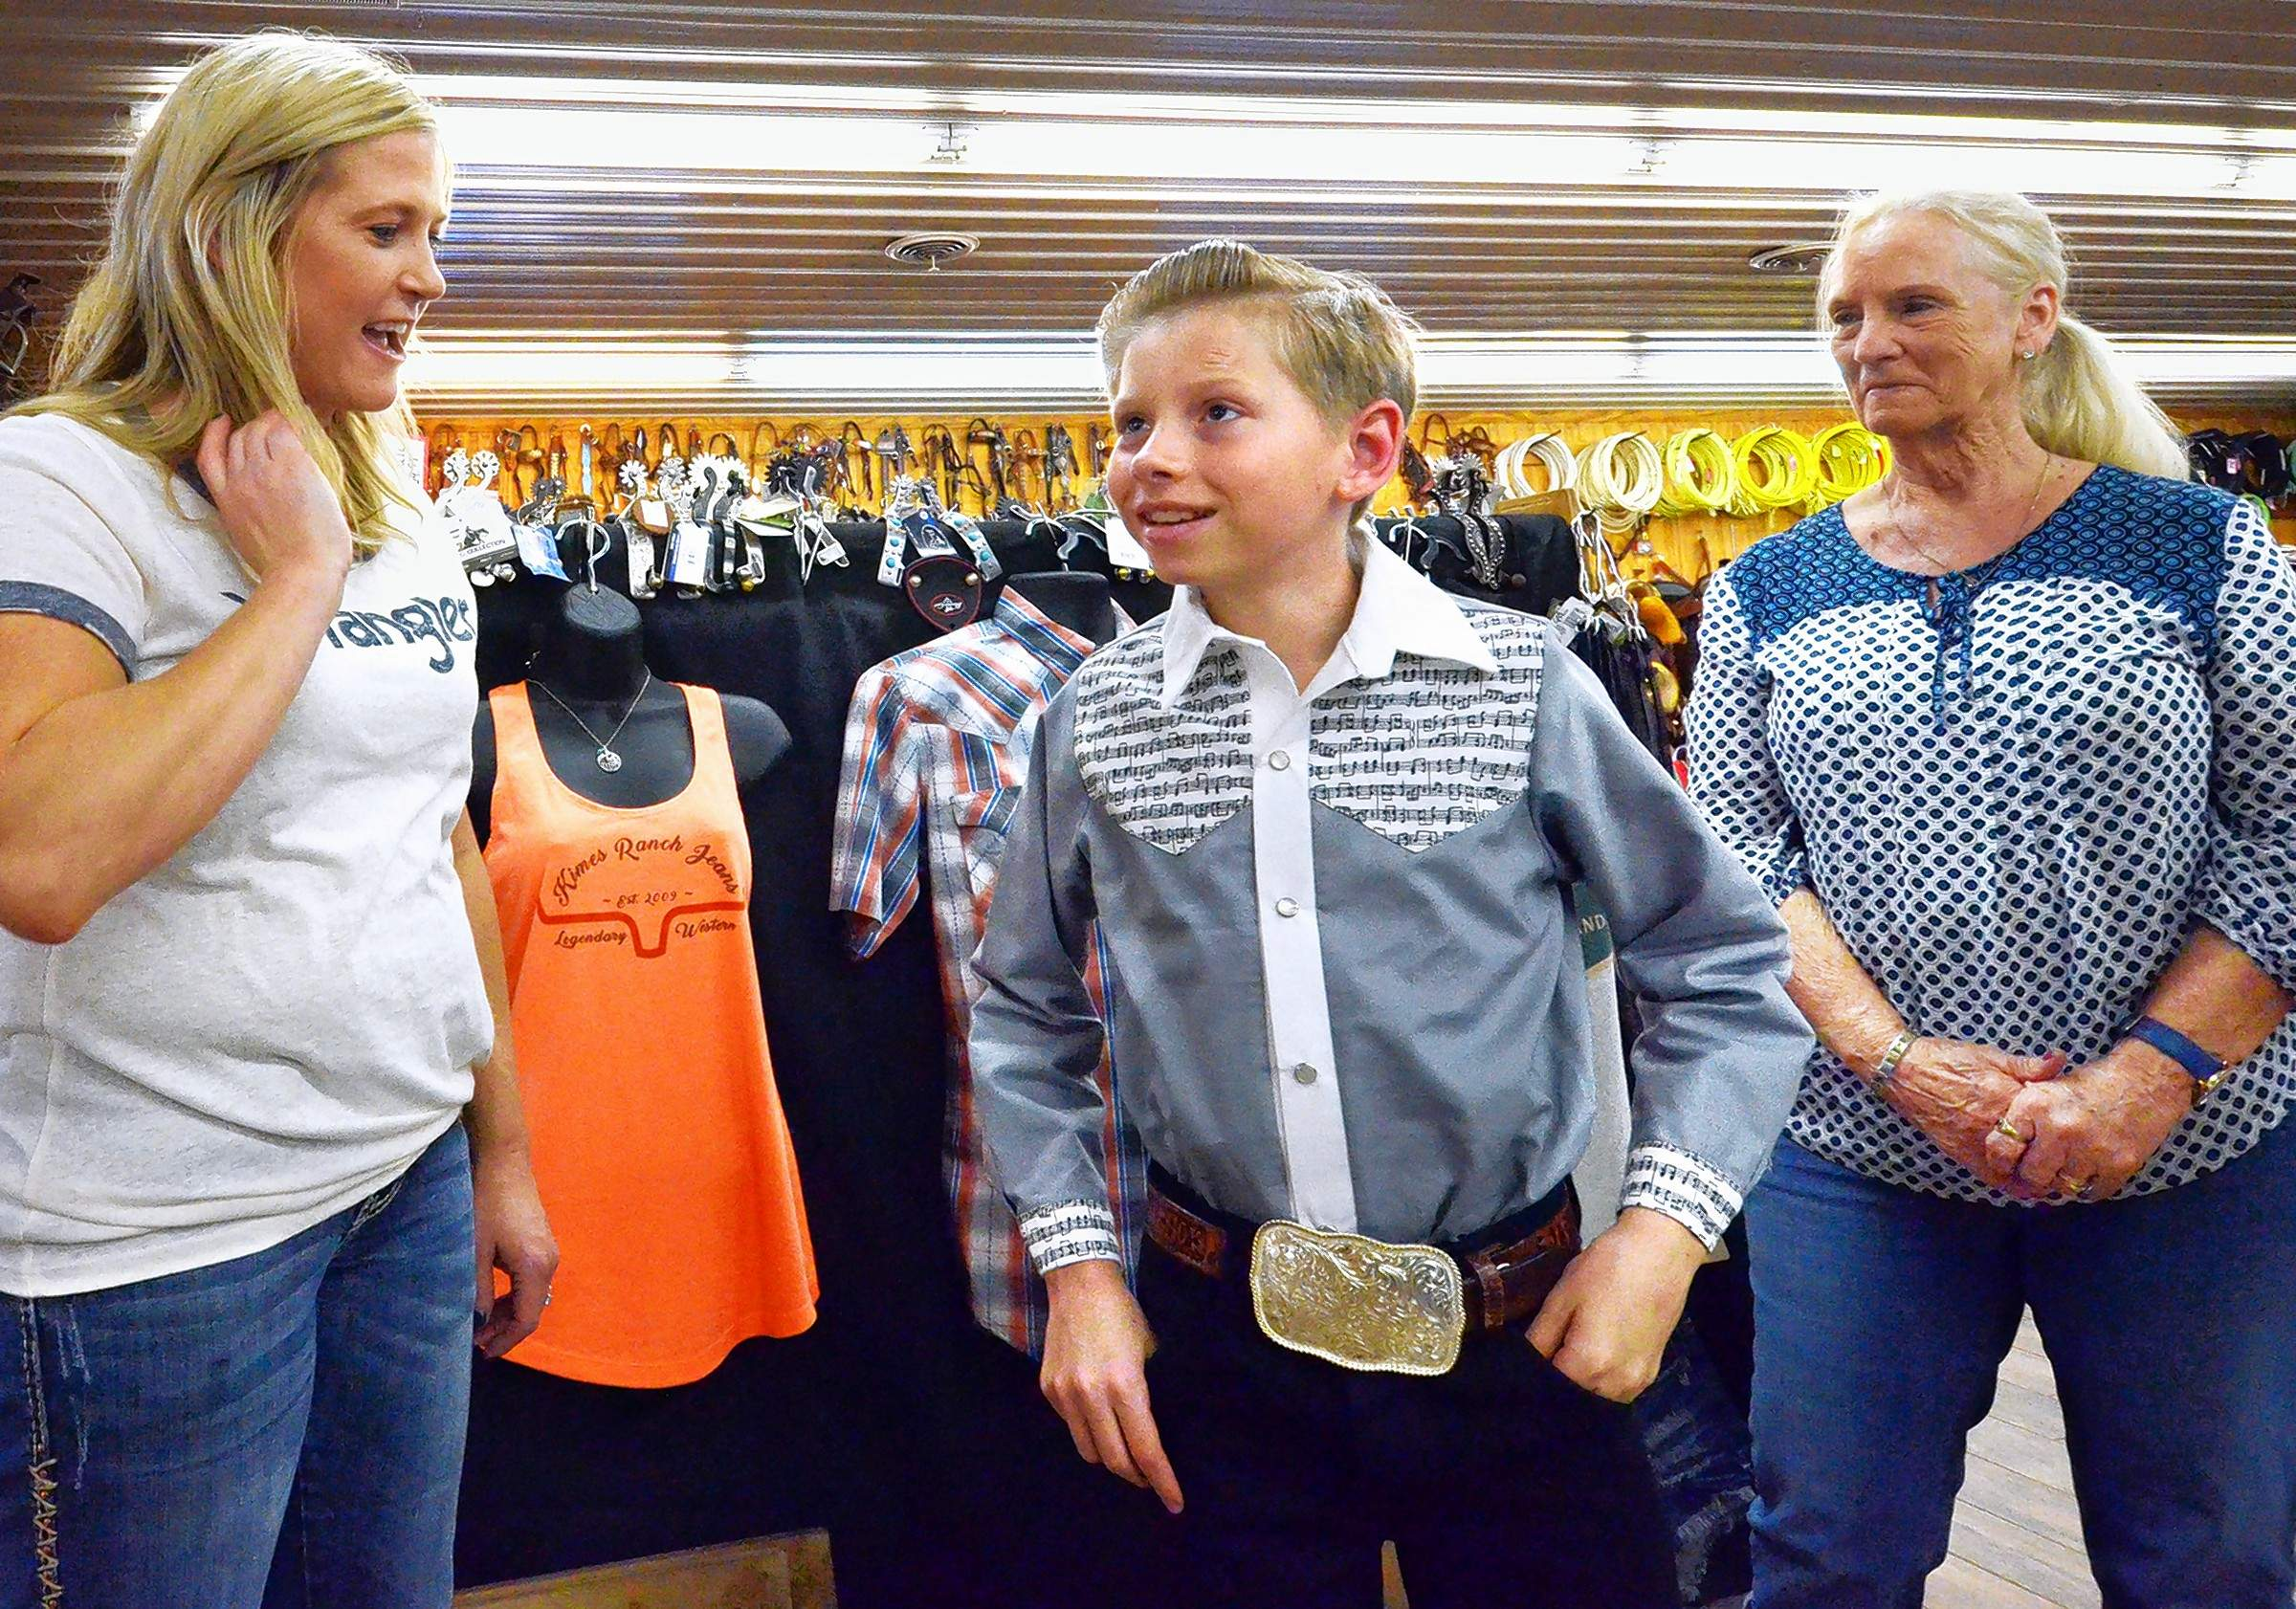 McKinney's Western Wear store employee Diane Williford, left, greets Mason Ramsey and his grandmother, Frances, right, when they arrived at the Marion business Wednesday.